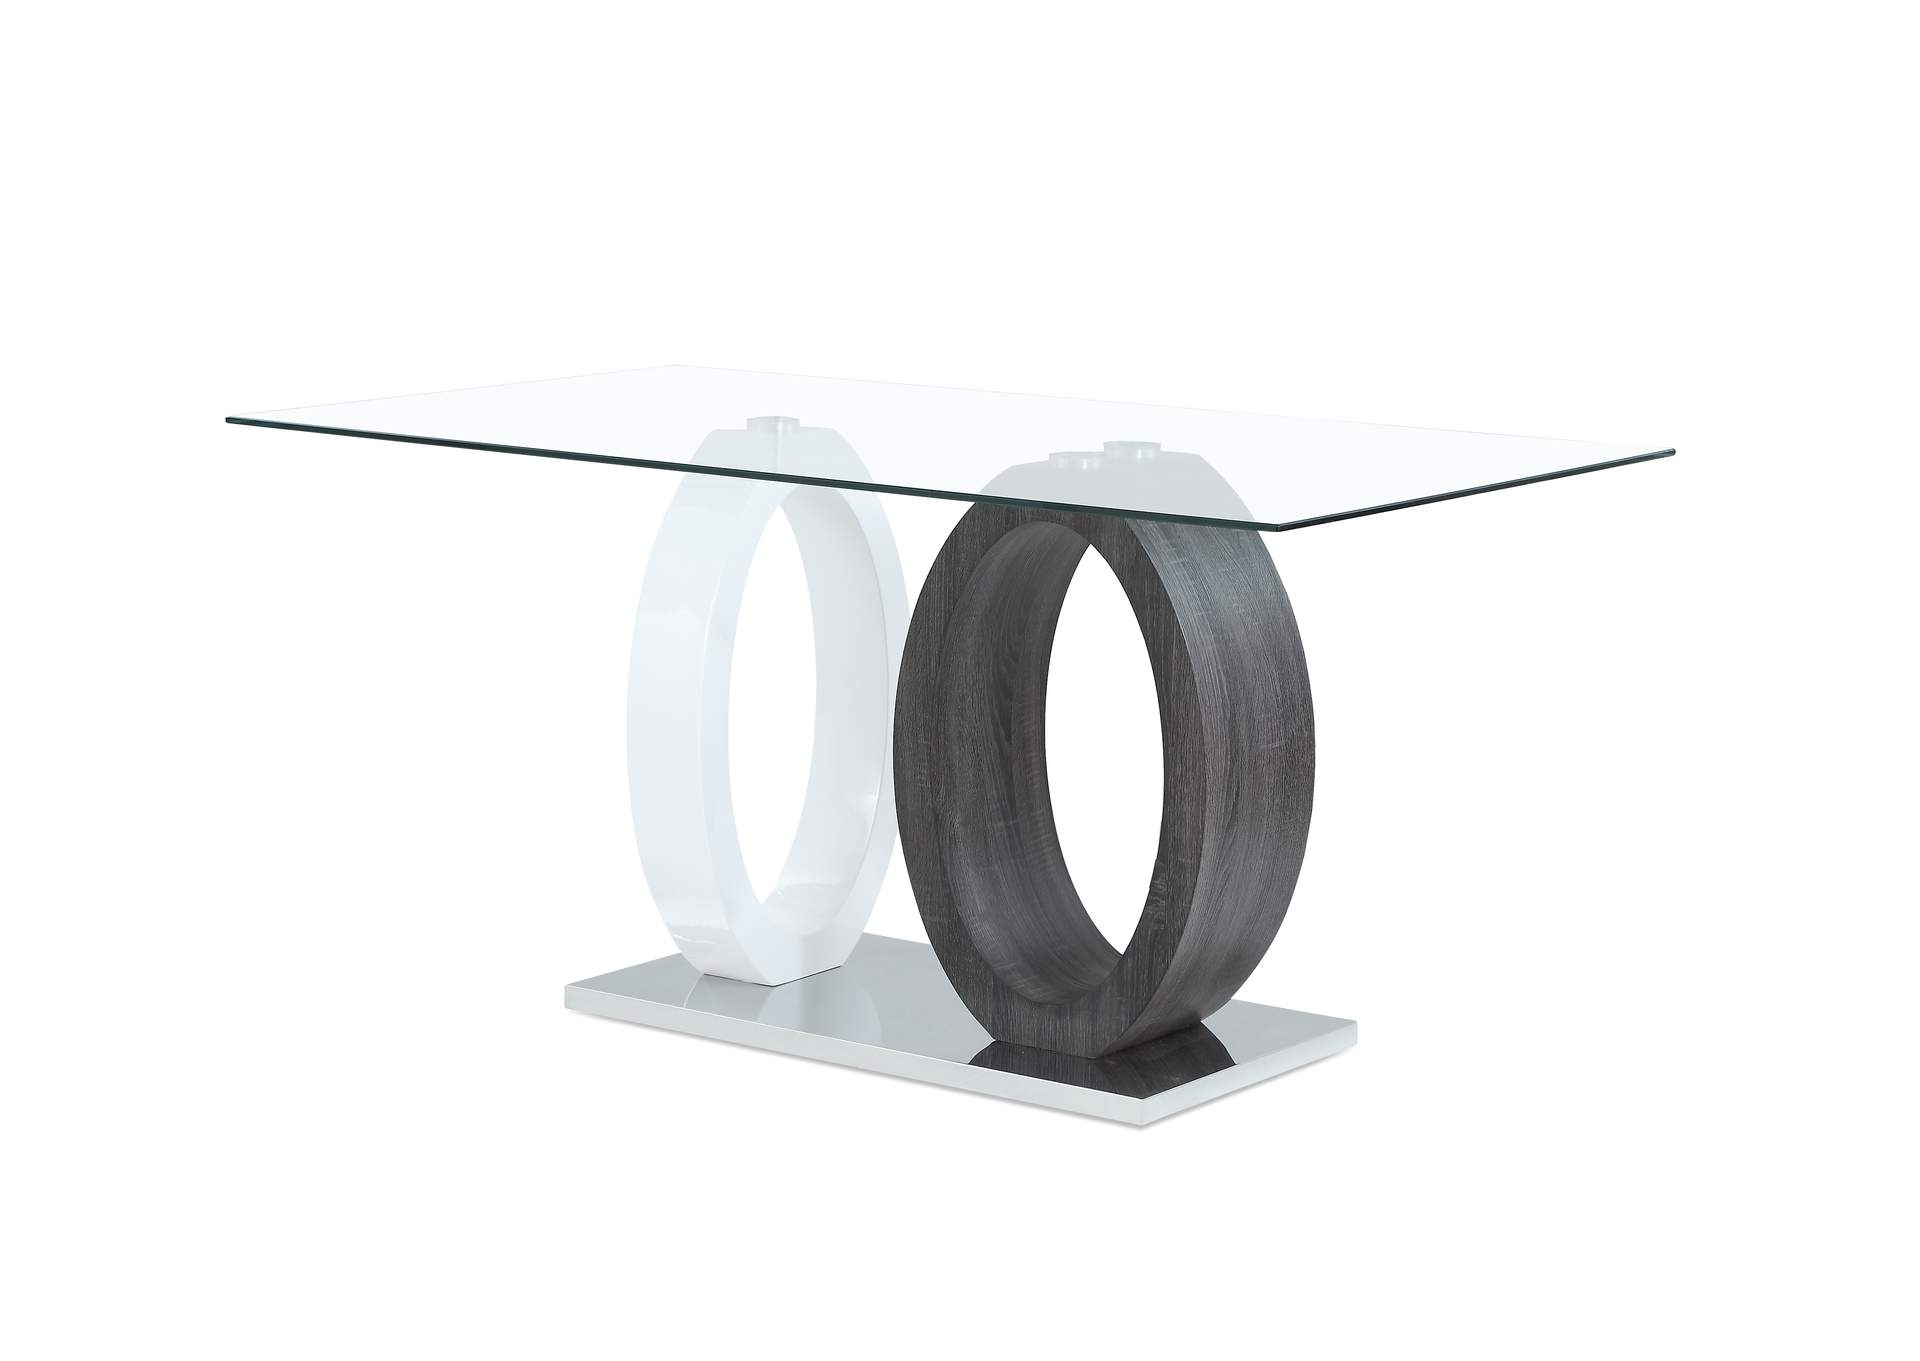 White/Grey Dining Table,Global Furniture USA